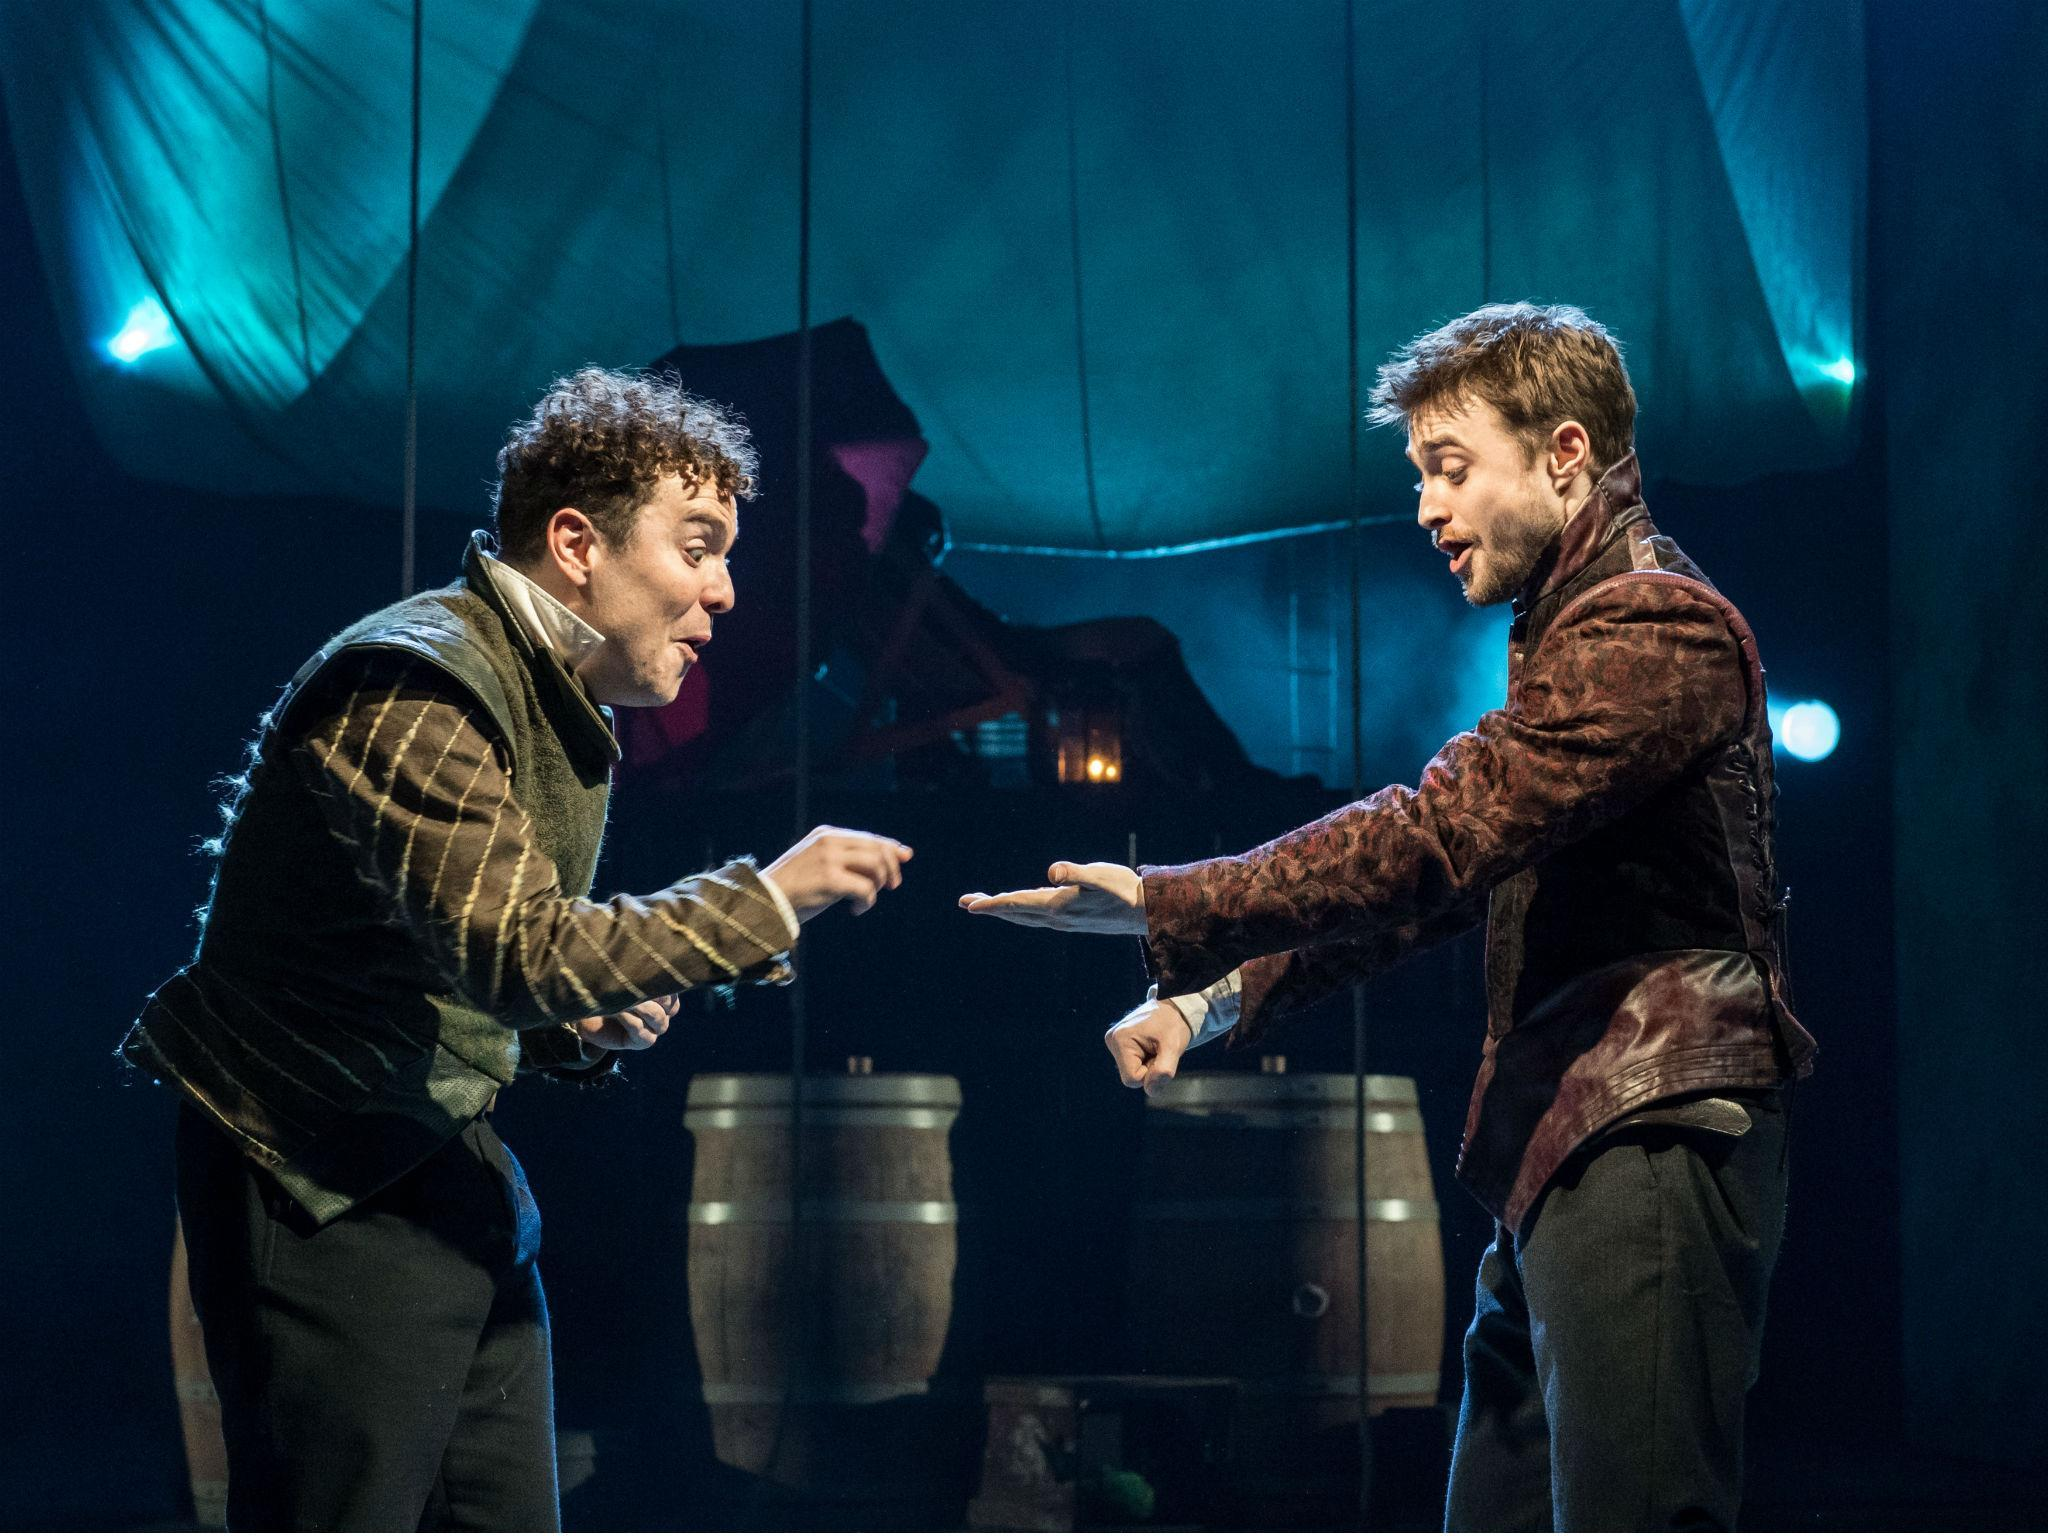 an analysis of tom stoppards play rosencrantz and guildenstern are dead Acclaimed as a modern dramatic masterpiece, rosencrantz & guildenstern are dead is the fabulously inventive tale of hamlet as told from the worm's-eye view of the bewildered rosencrantz and guildenstern, two minor characters in shakespeare's play in tom stoppard's best-known work, this shakespearean laurel and.